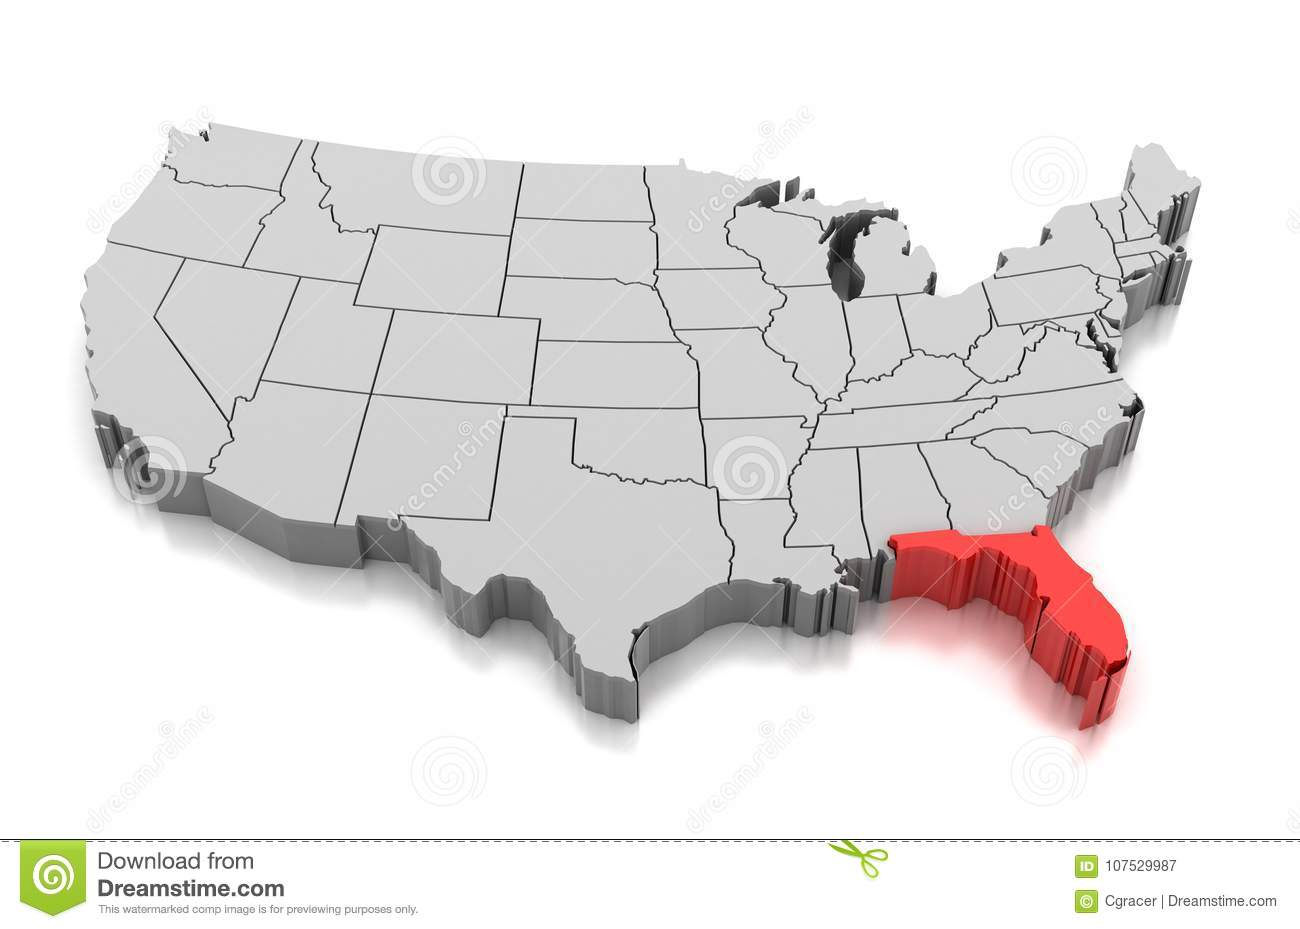 Florida In Usa Map.Map Of Florida State Usa Stock Illustration Illustration Of